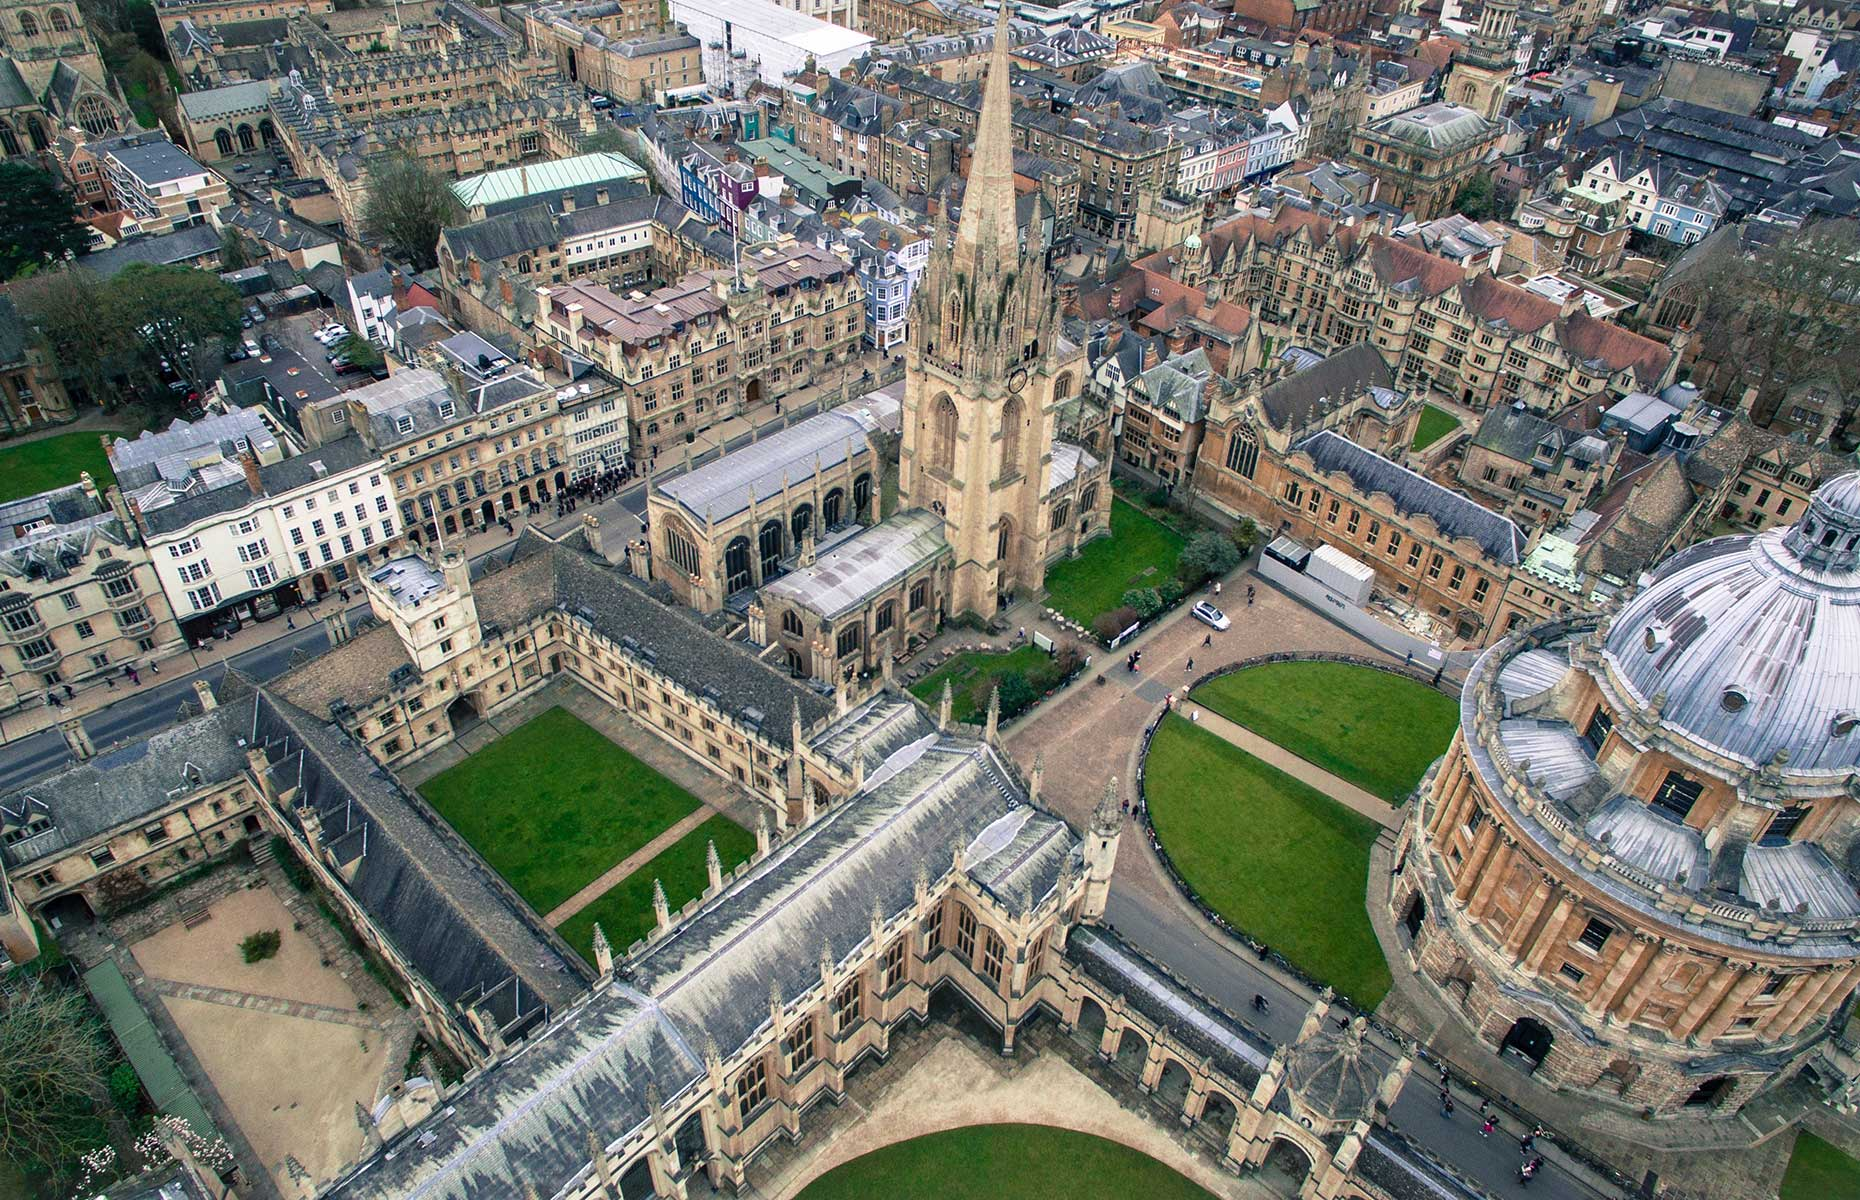 Oxford with its dreaming spires is around 60 minutes from London